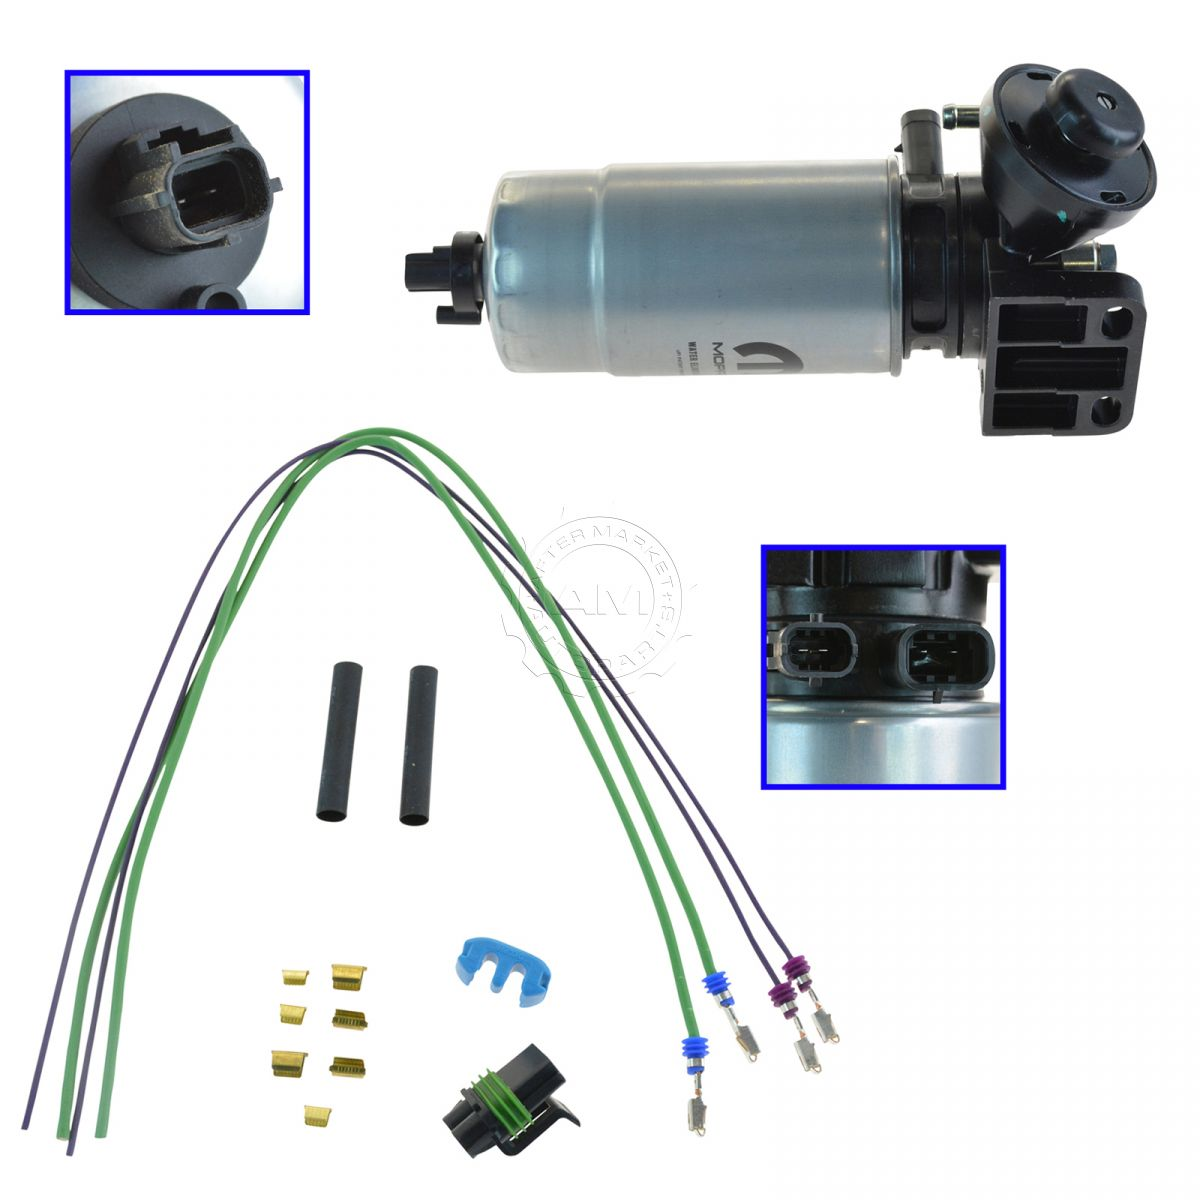 hight resolution of oem mopar oil filter water separator with wire harness kit for jeep liberty 2 8l